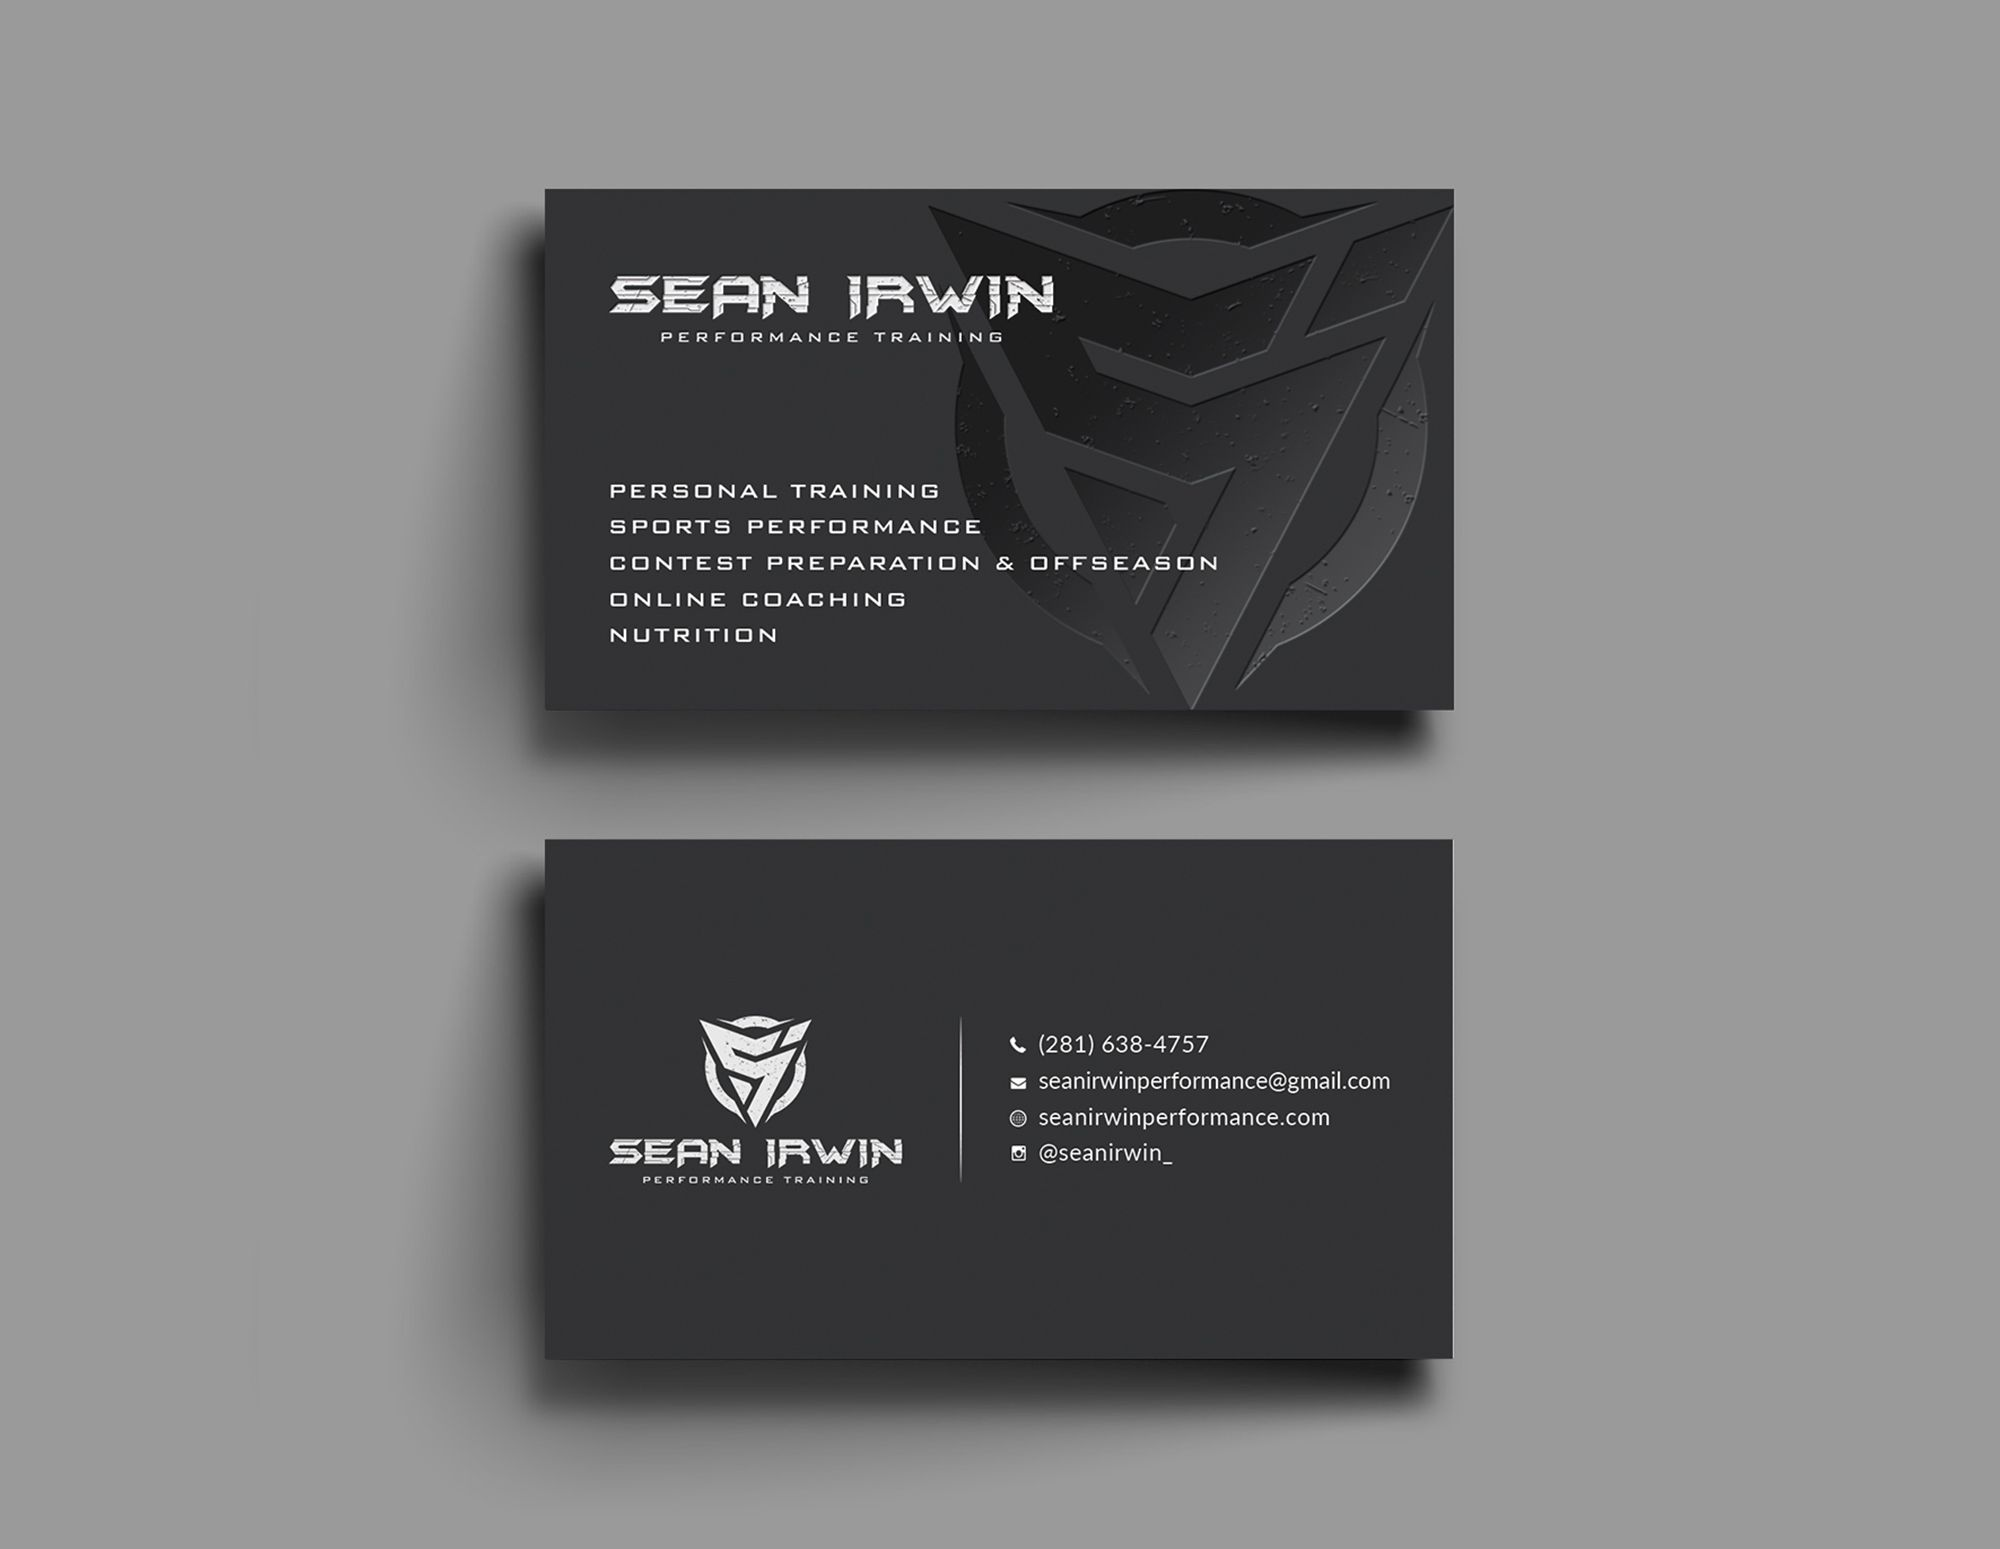 Imamhasan03 I Will Provide Professional Business Card Design For 5 On Fiverr Com Business Card Design Professional Business Cards Business Cards Creative